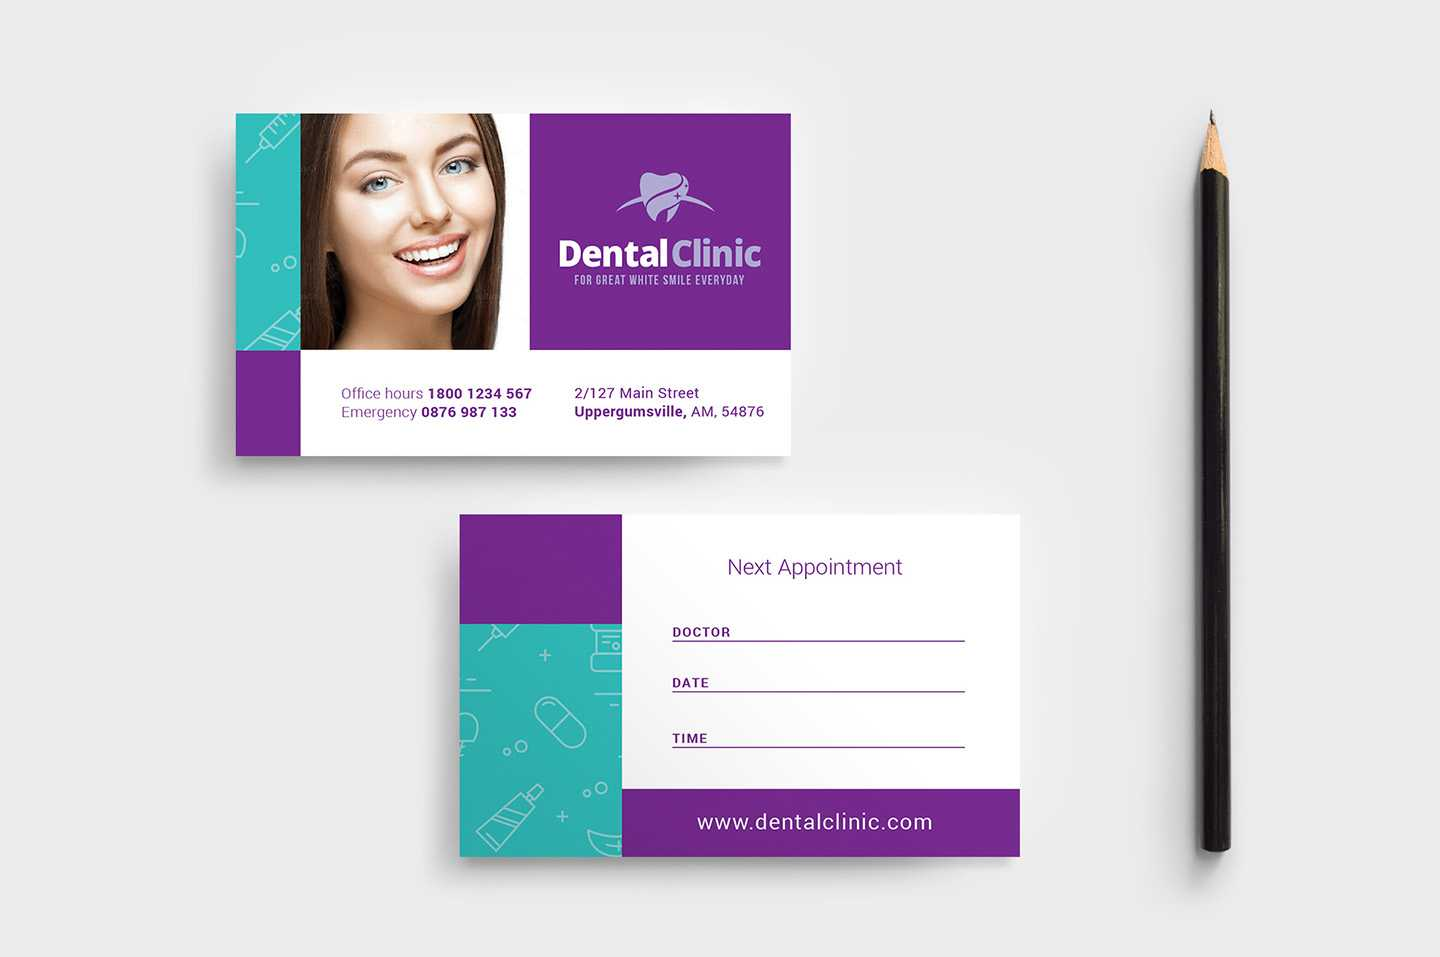 Dental Clinic Appointment Card Template In Psd, Ai & Vector With Dentist Appointment Card Template